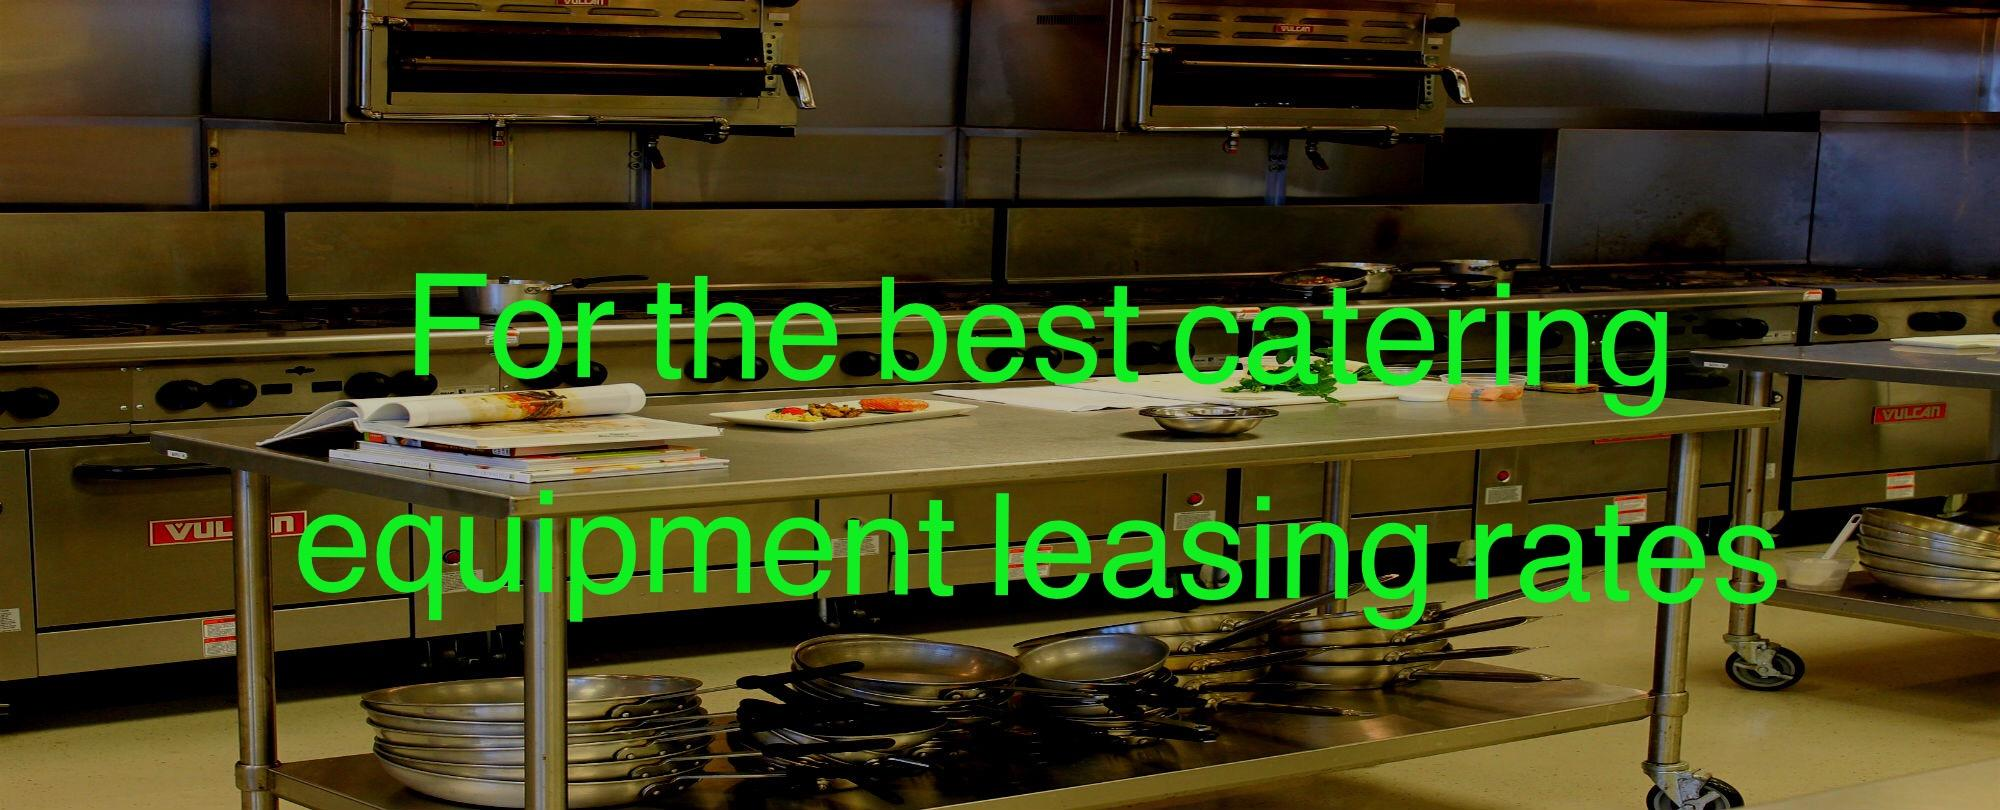 Catering equipment leasing specialists, Oak Leas